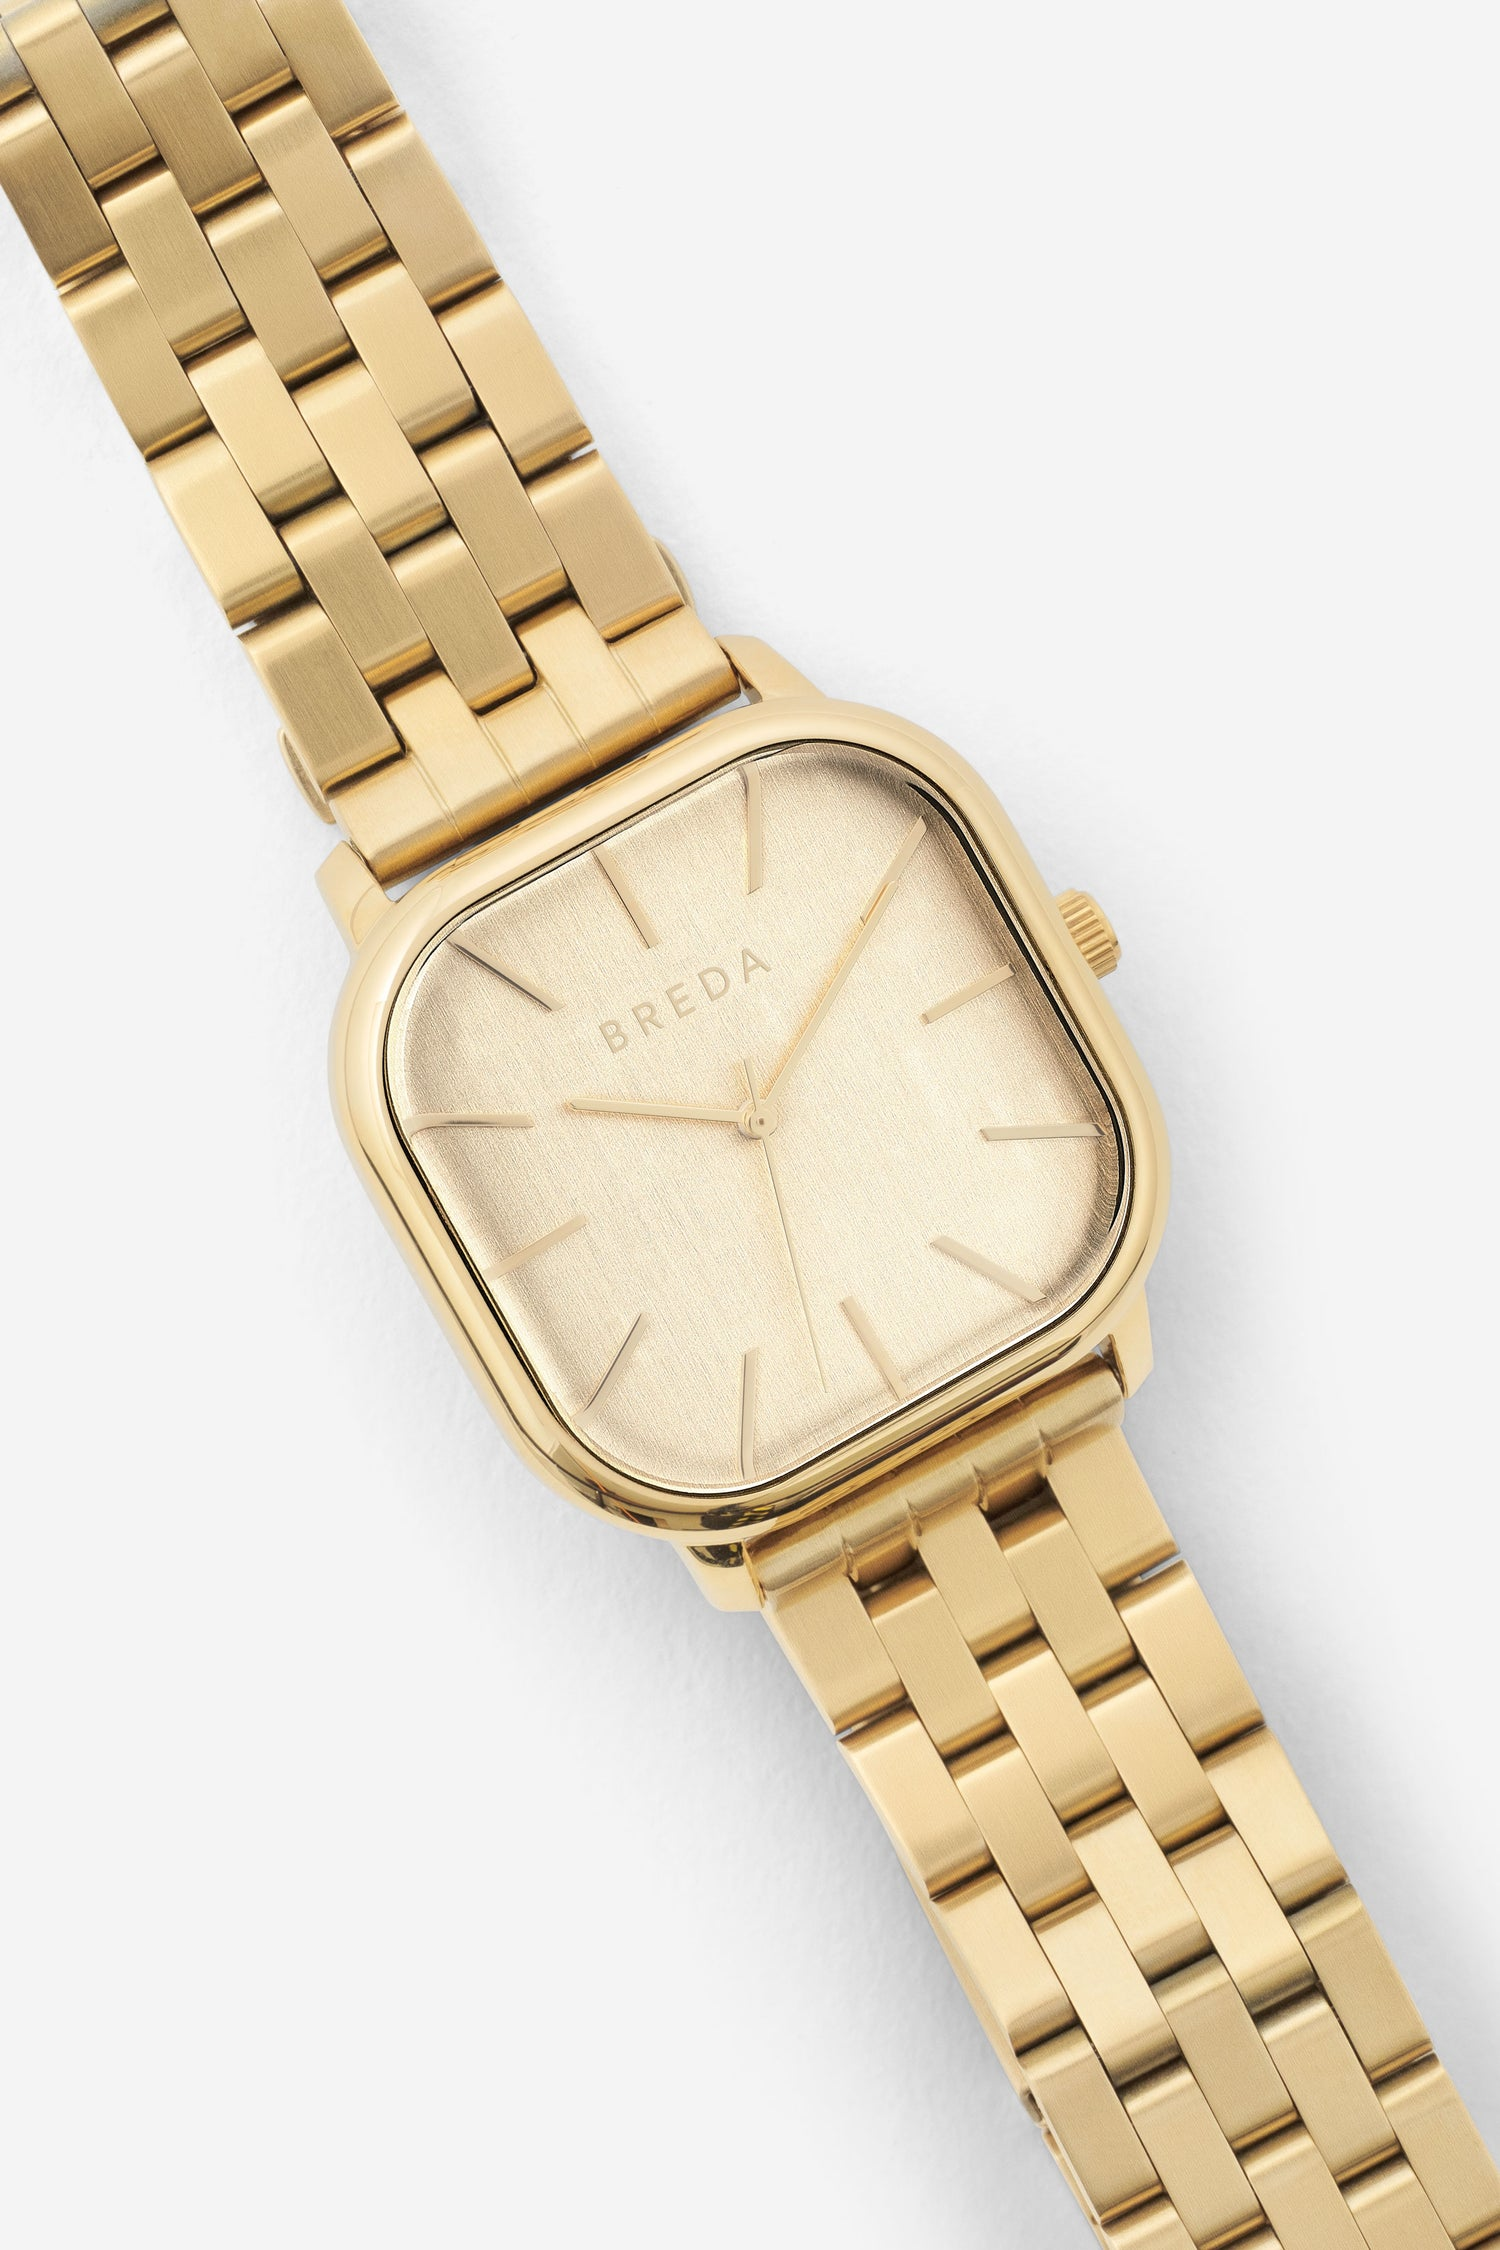 breda-visser-1737a-gold-metal-bracelet-watch-long